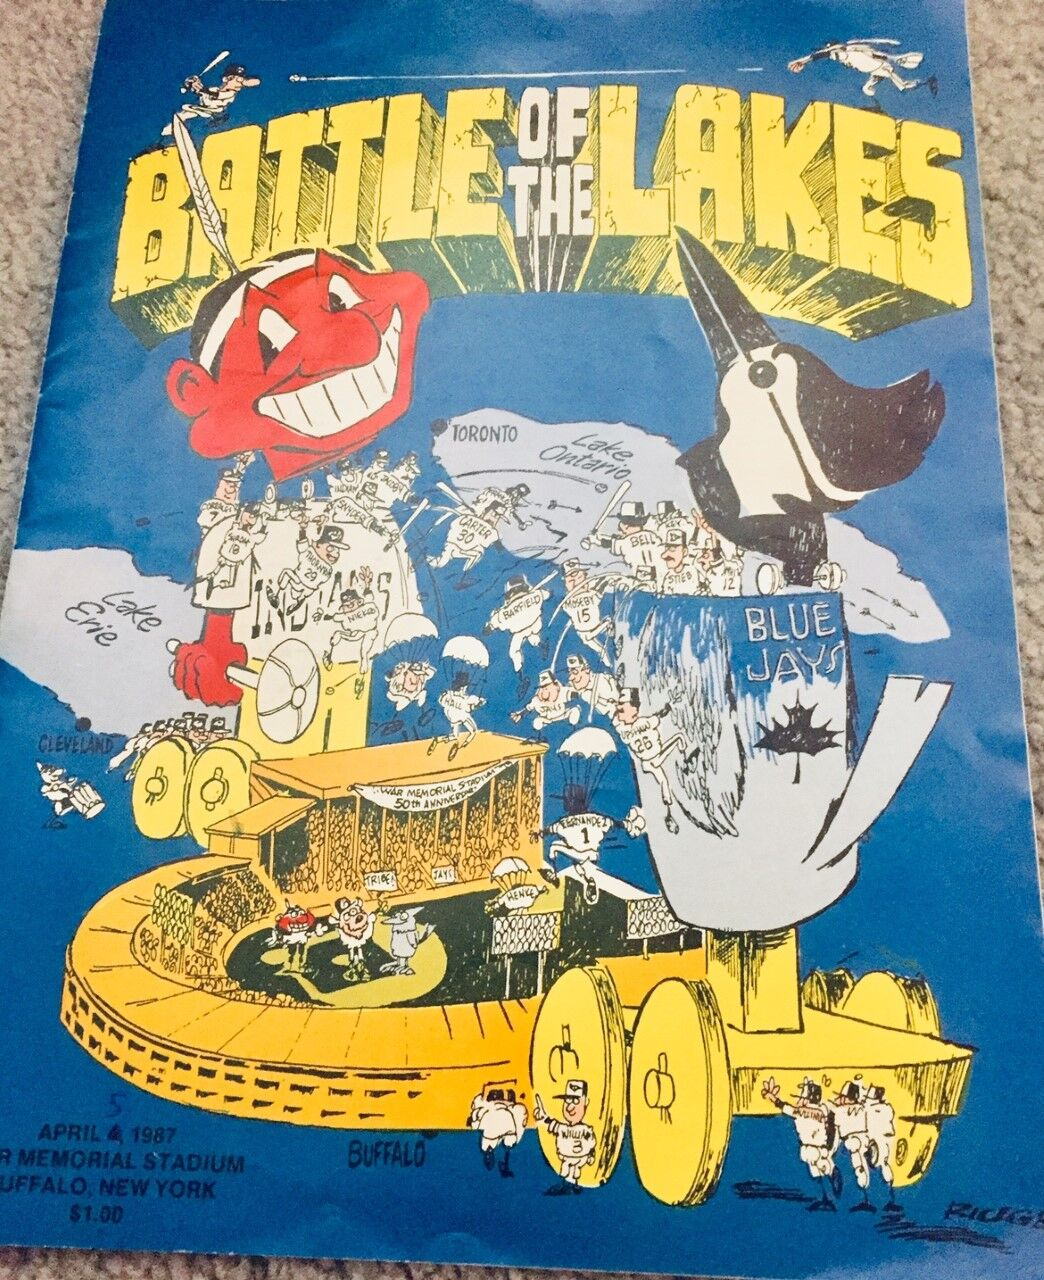 Battle of the Lakes program